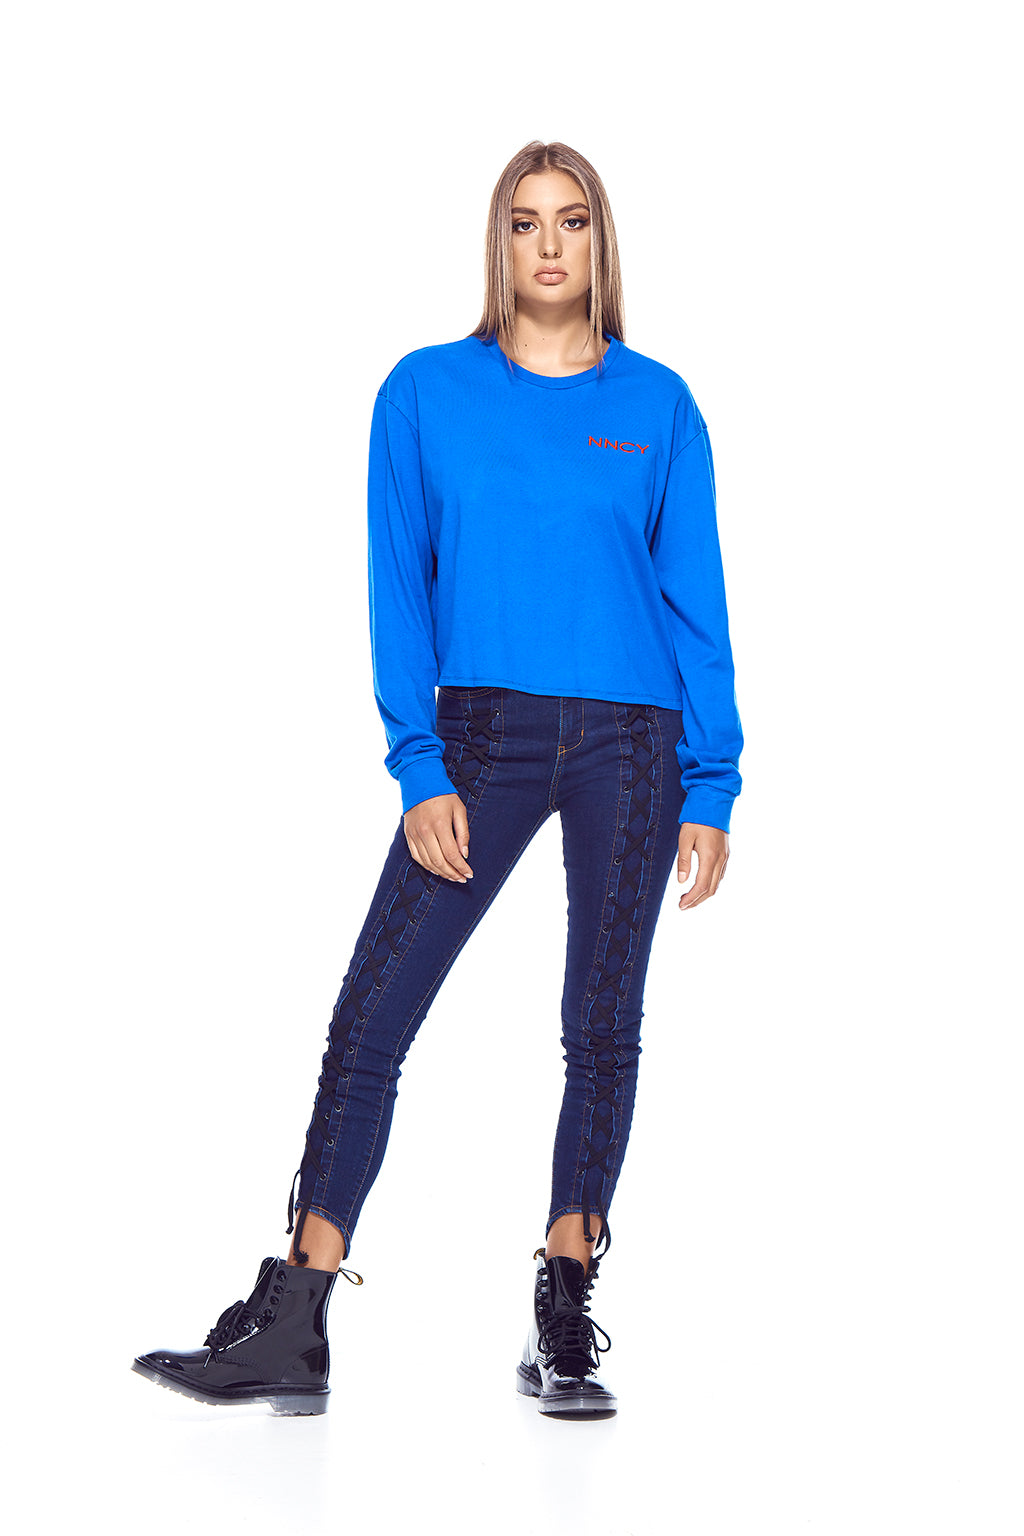 NNCY Oversized Logo Sleeve - Blue